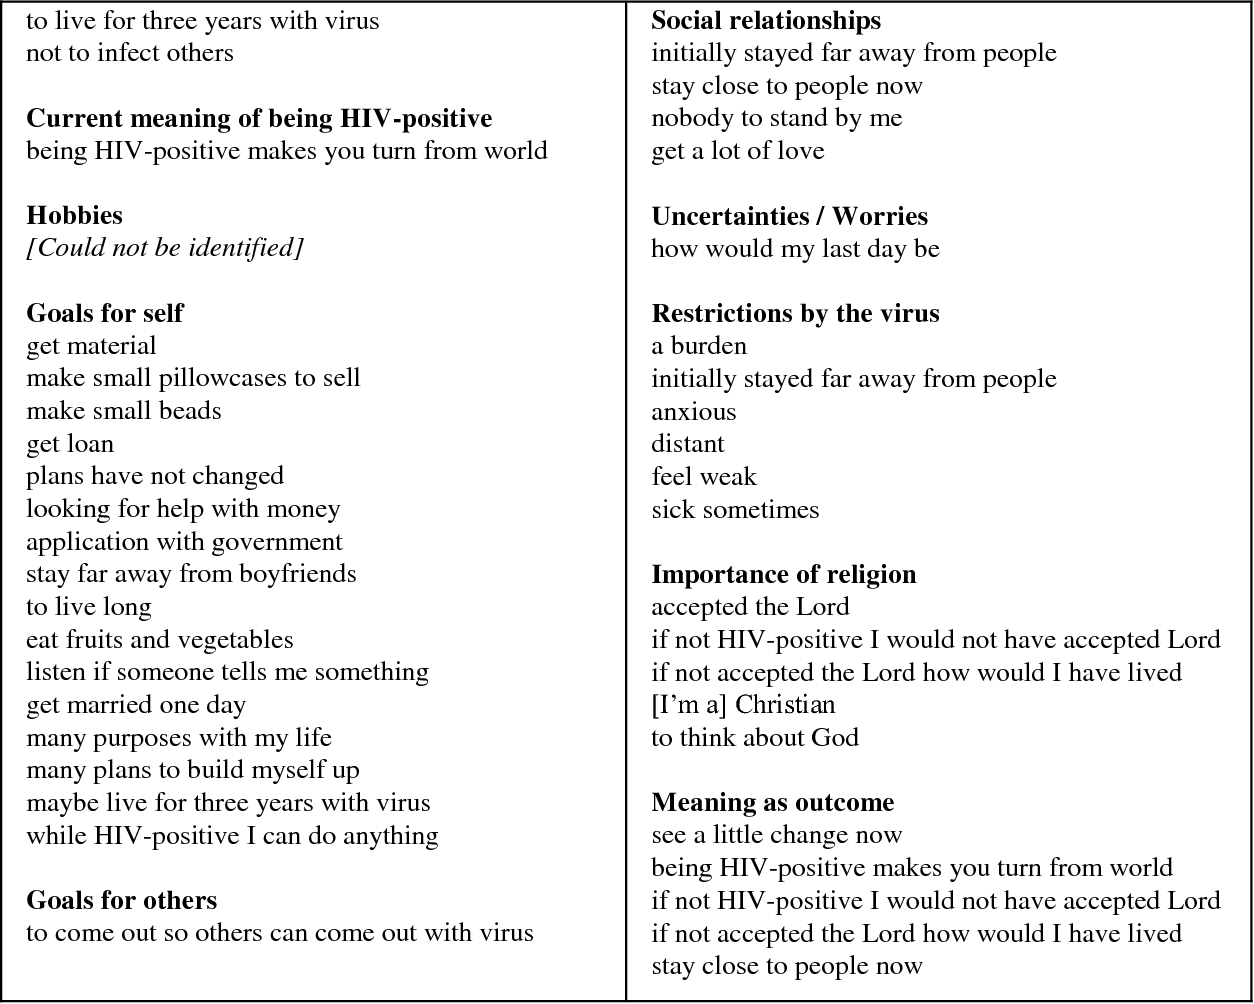 Table 2 from Living with HIV: the psychological relevance of